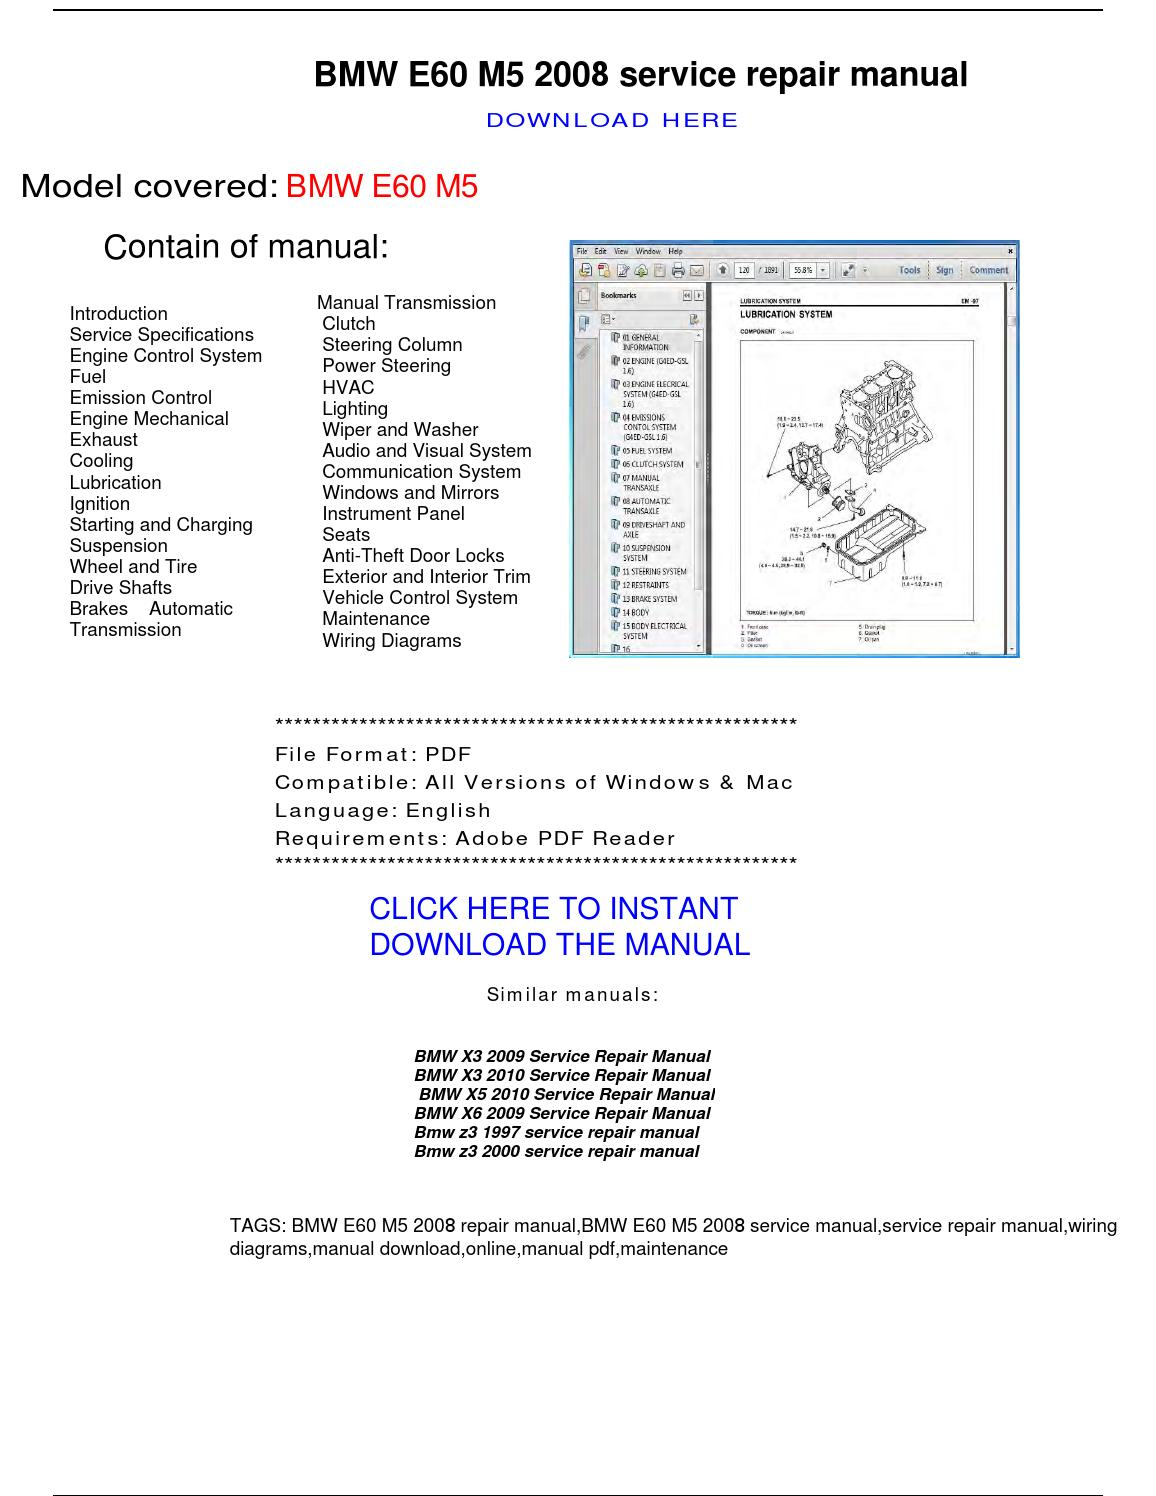 Bmw E60 M5 2008 Repair Manual By Repairmanuals